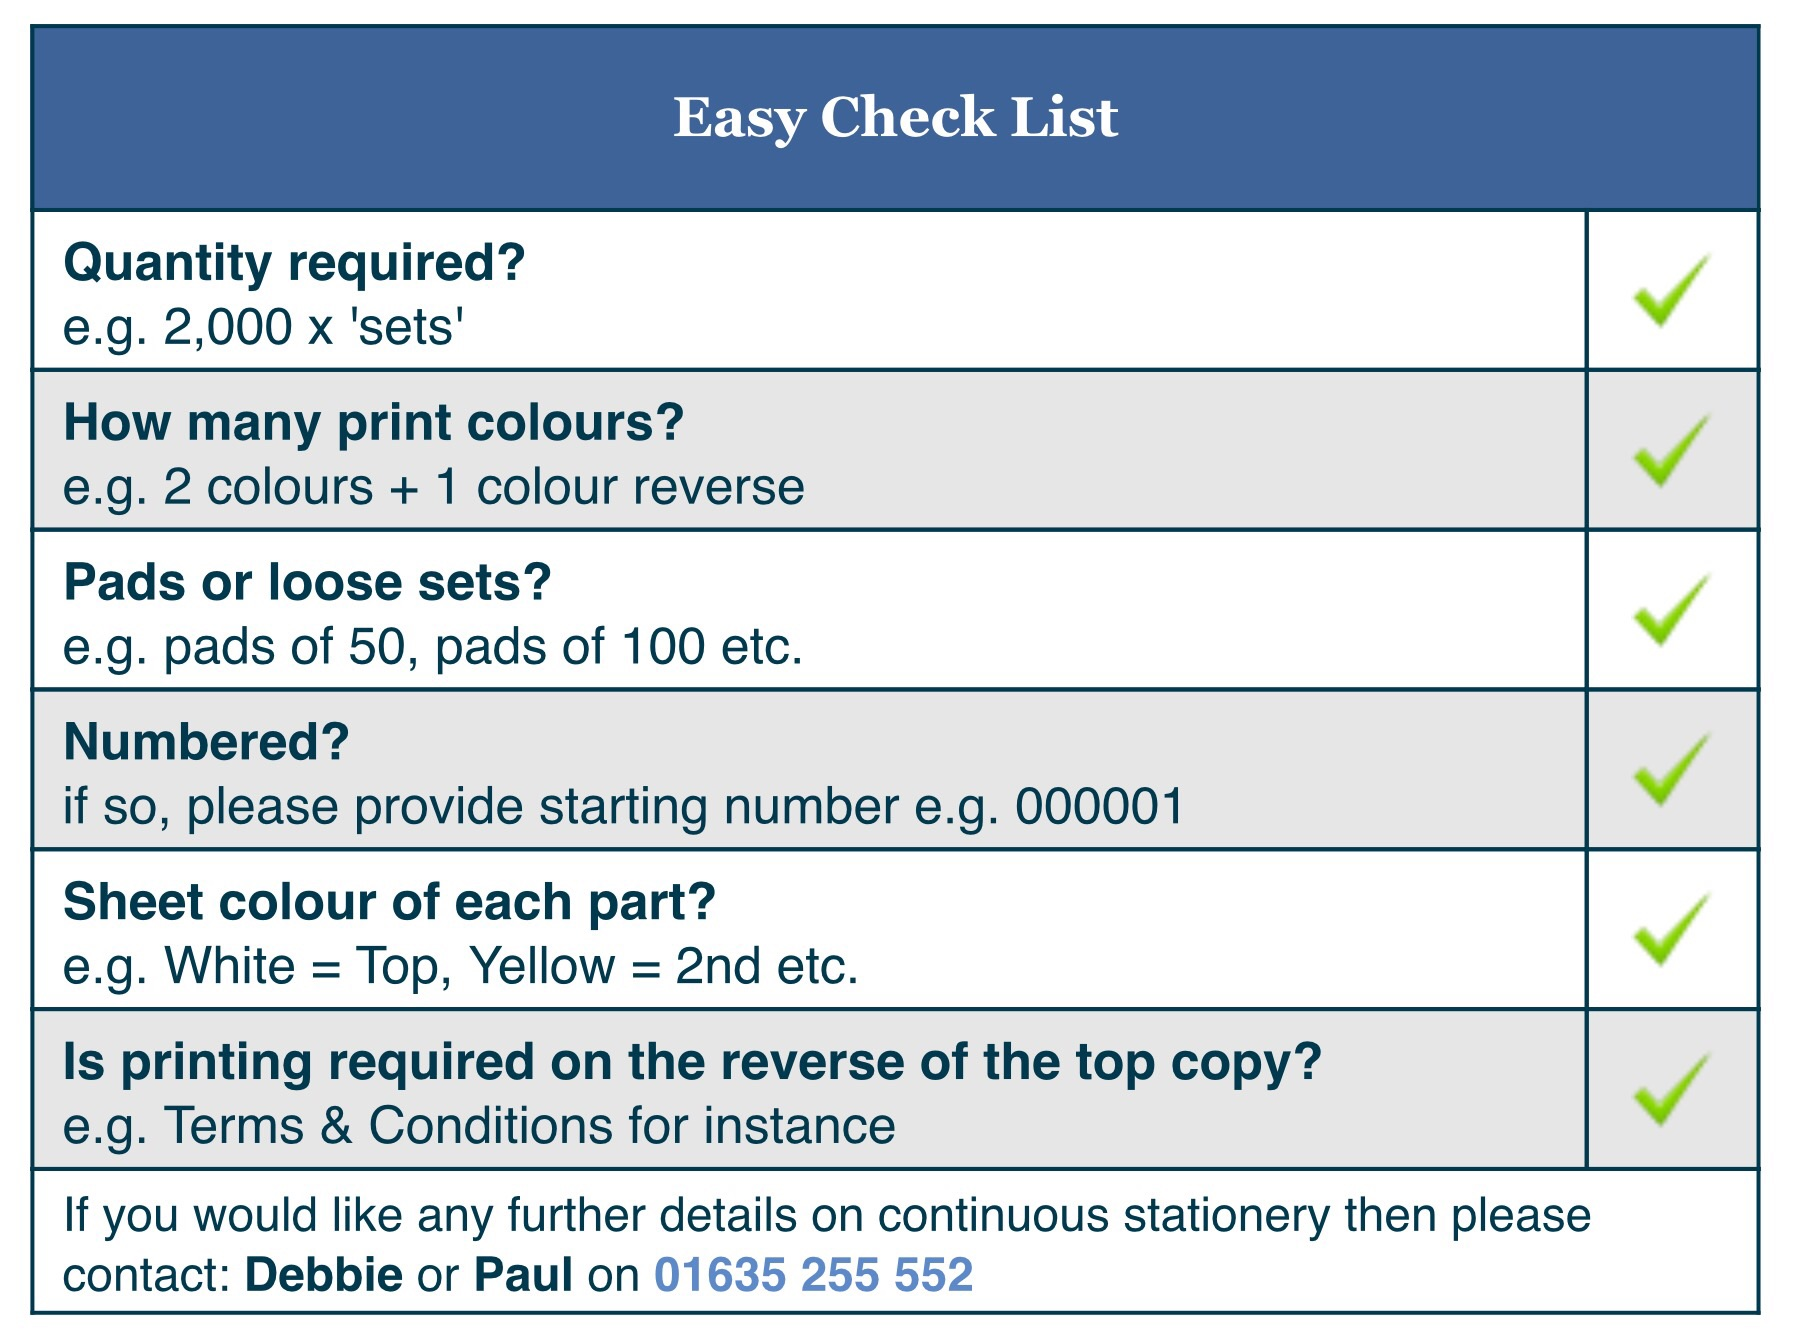 Forms Printing checklist